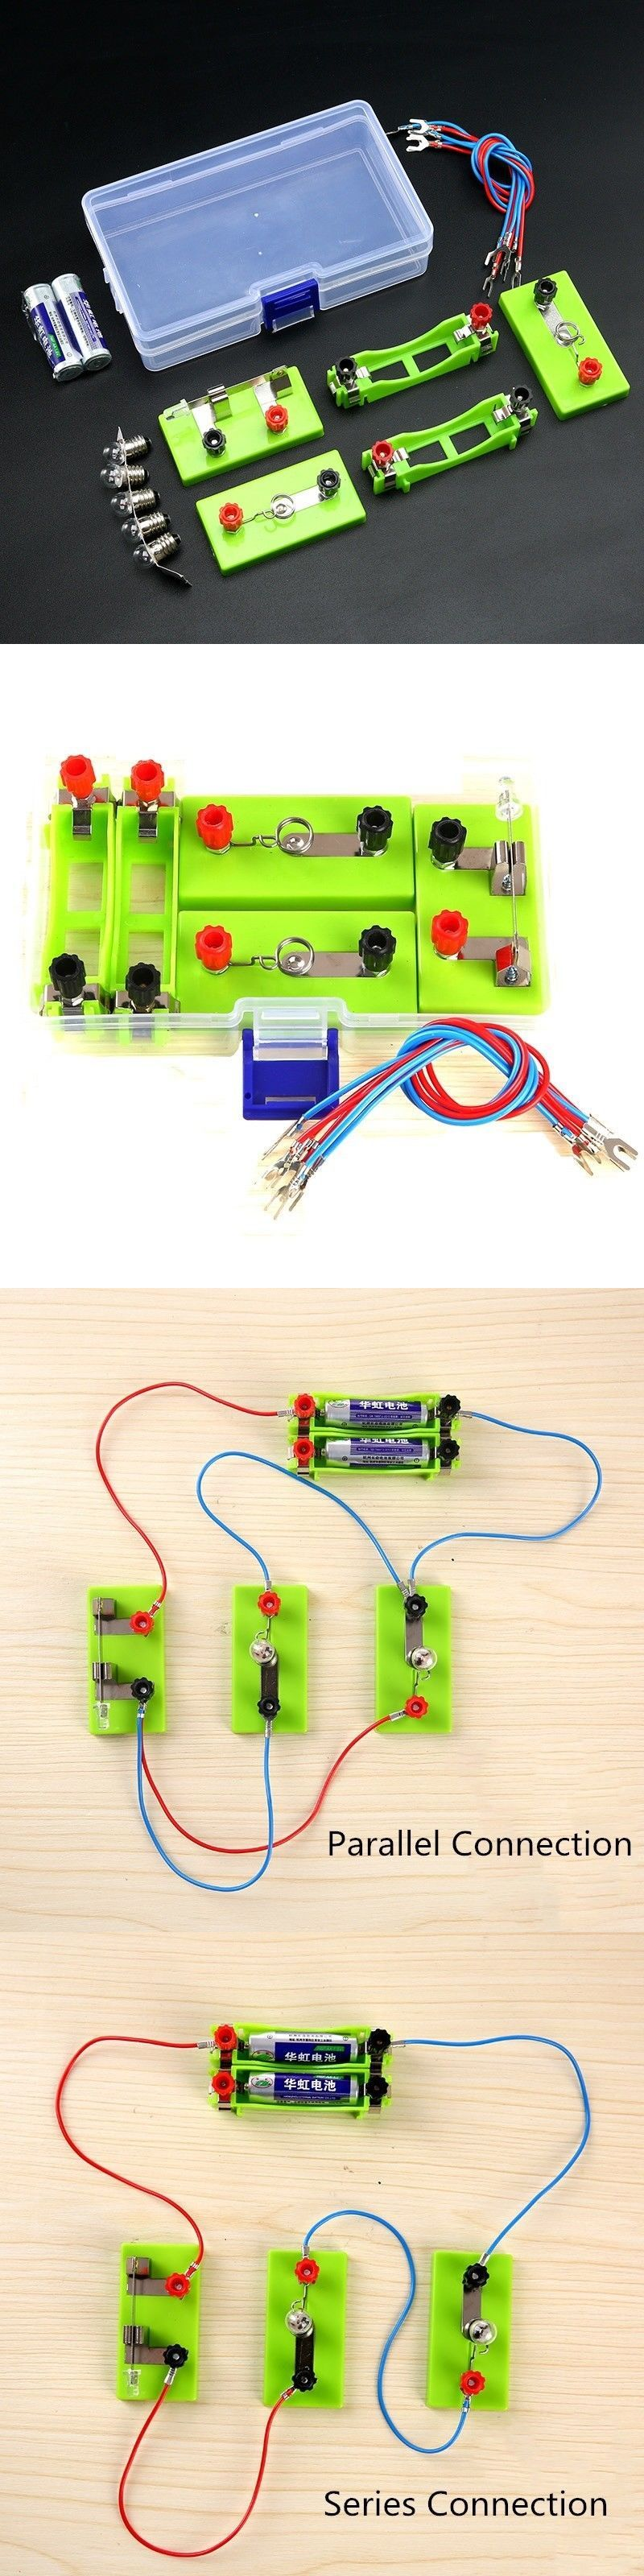 Electric Circuit Kits Children School Science Toys Diy Montessori For Kids Other And Nature 11737